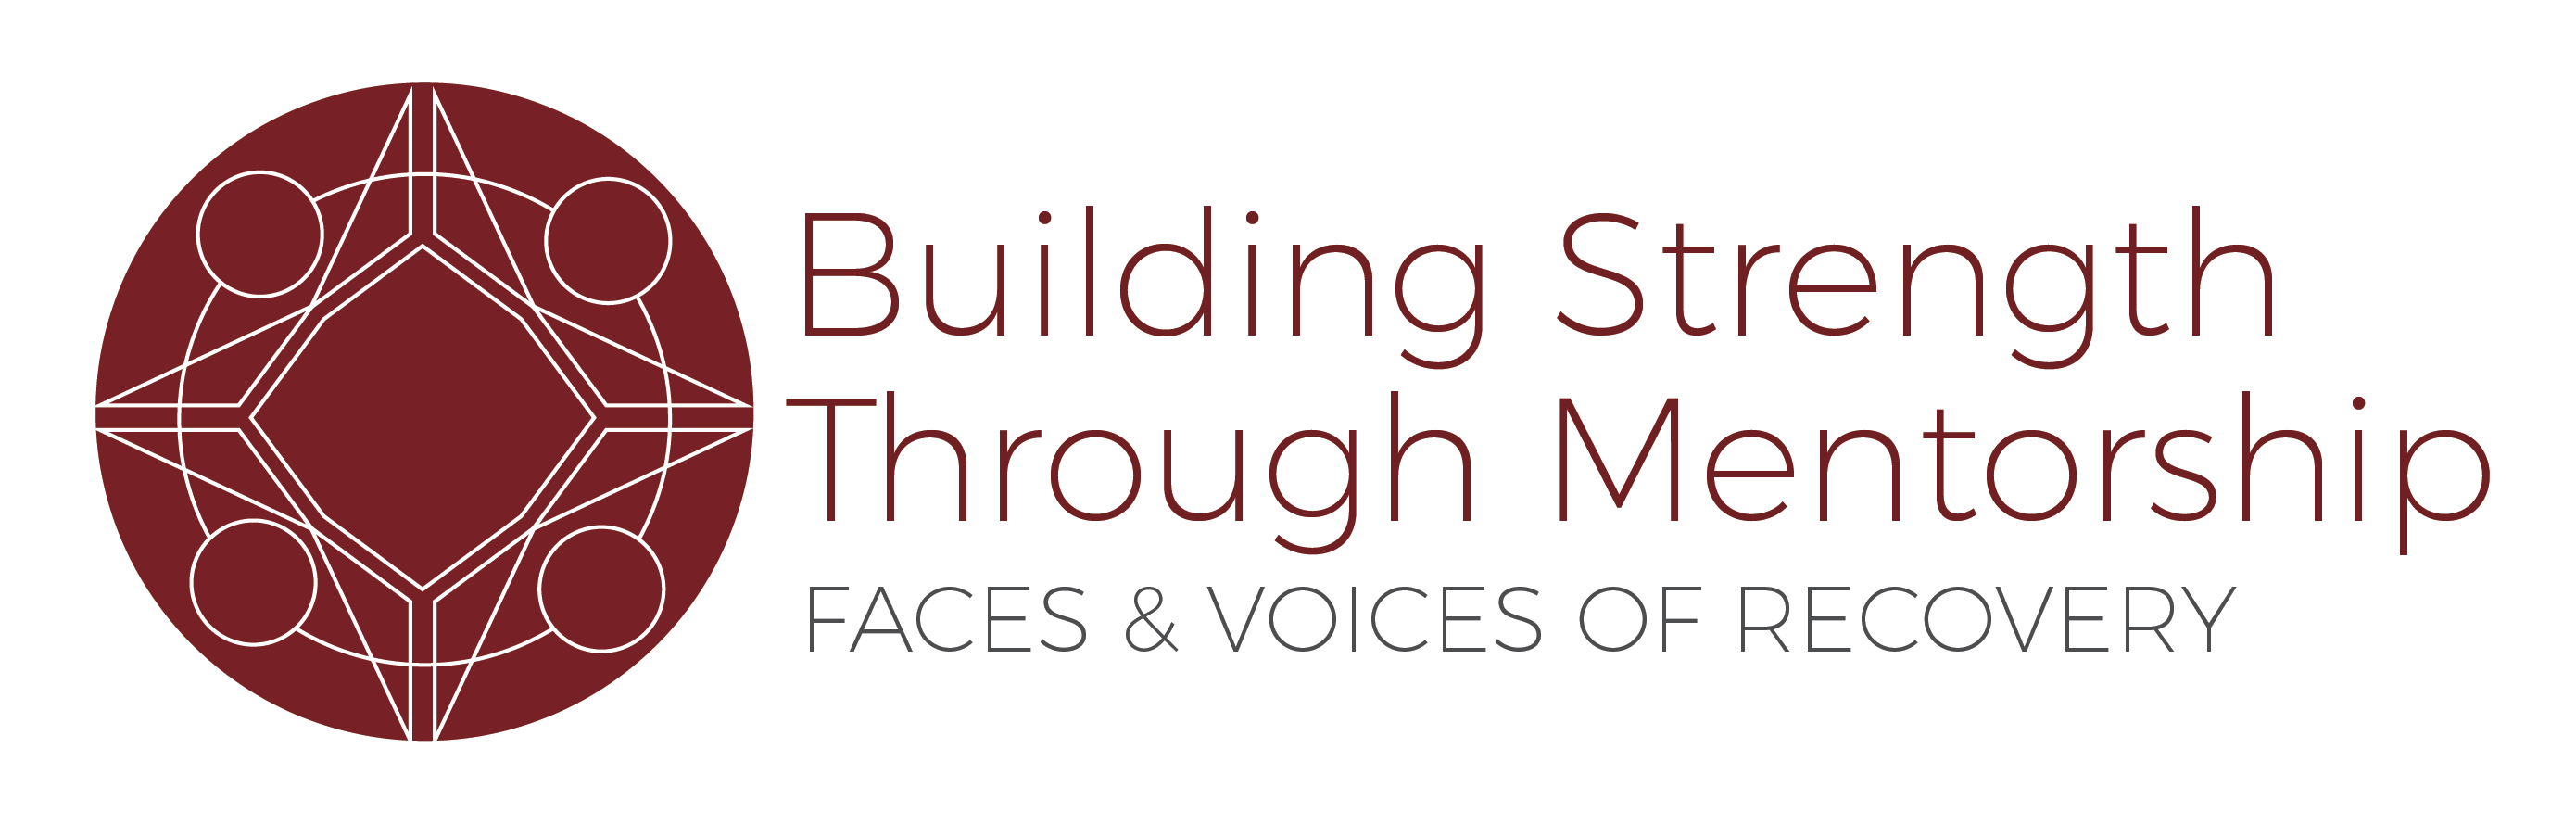 FACES & VOICES of RECOVERY Announces New Building Strength through Mentorship: Recovery Community Organization Pilot Program